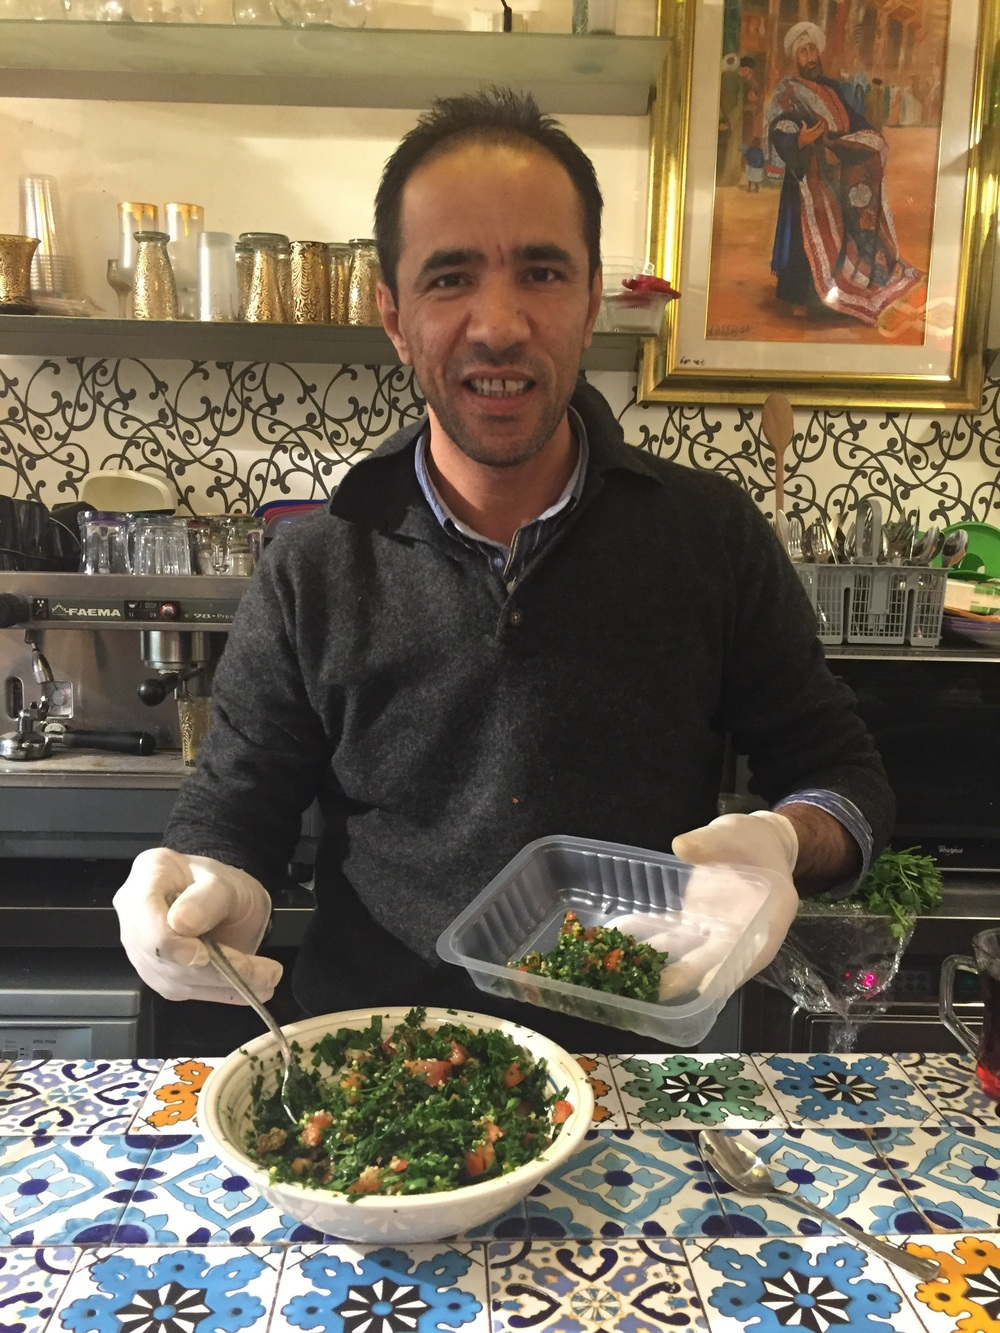 The lovely man who made me fresh taboule and said we must eat it within ten minutes. It was divine.